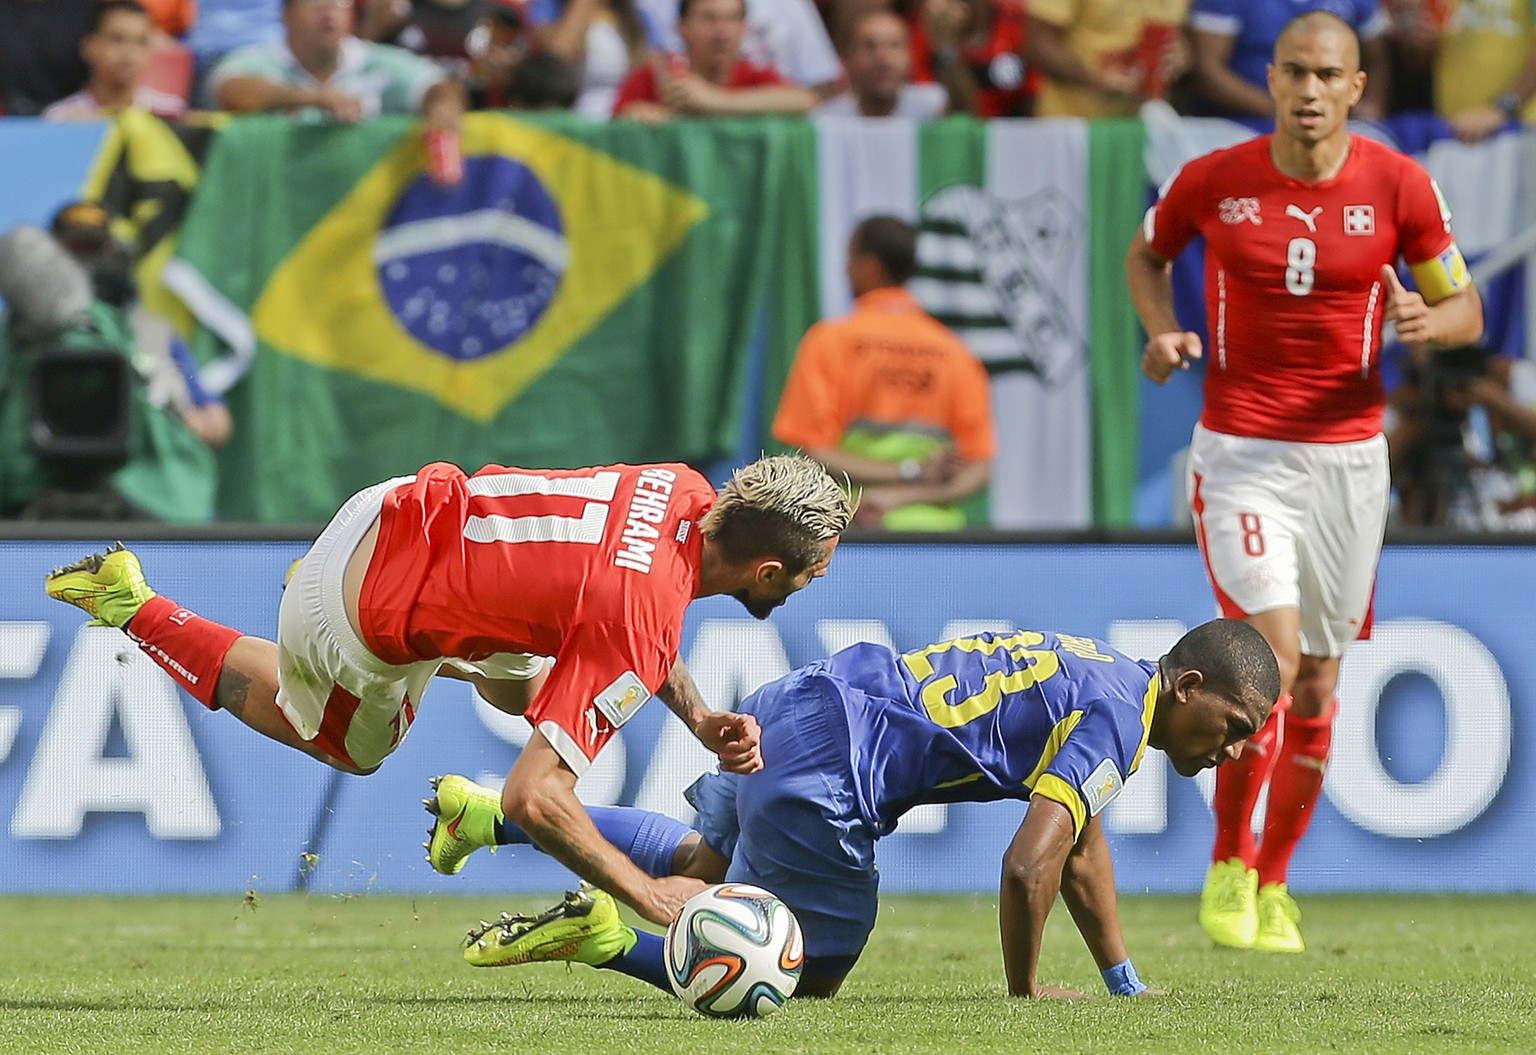 Switzerland's Valon Behrami, left, is fouled by Ecuador's Carlos Gruezo during the group E World Cup soccer match between Switzerland and Ecuador at the Estadio Nacional in Brasilia, Brazil, Sunday, June 15, 2014.  The referee played the advantage rule and the Swiss carried on to score the winning goal. (AP Photo/Martin Mejia)